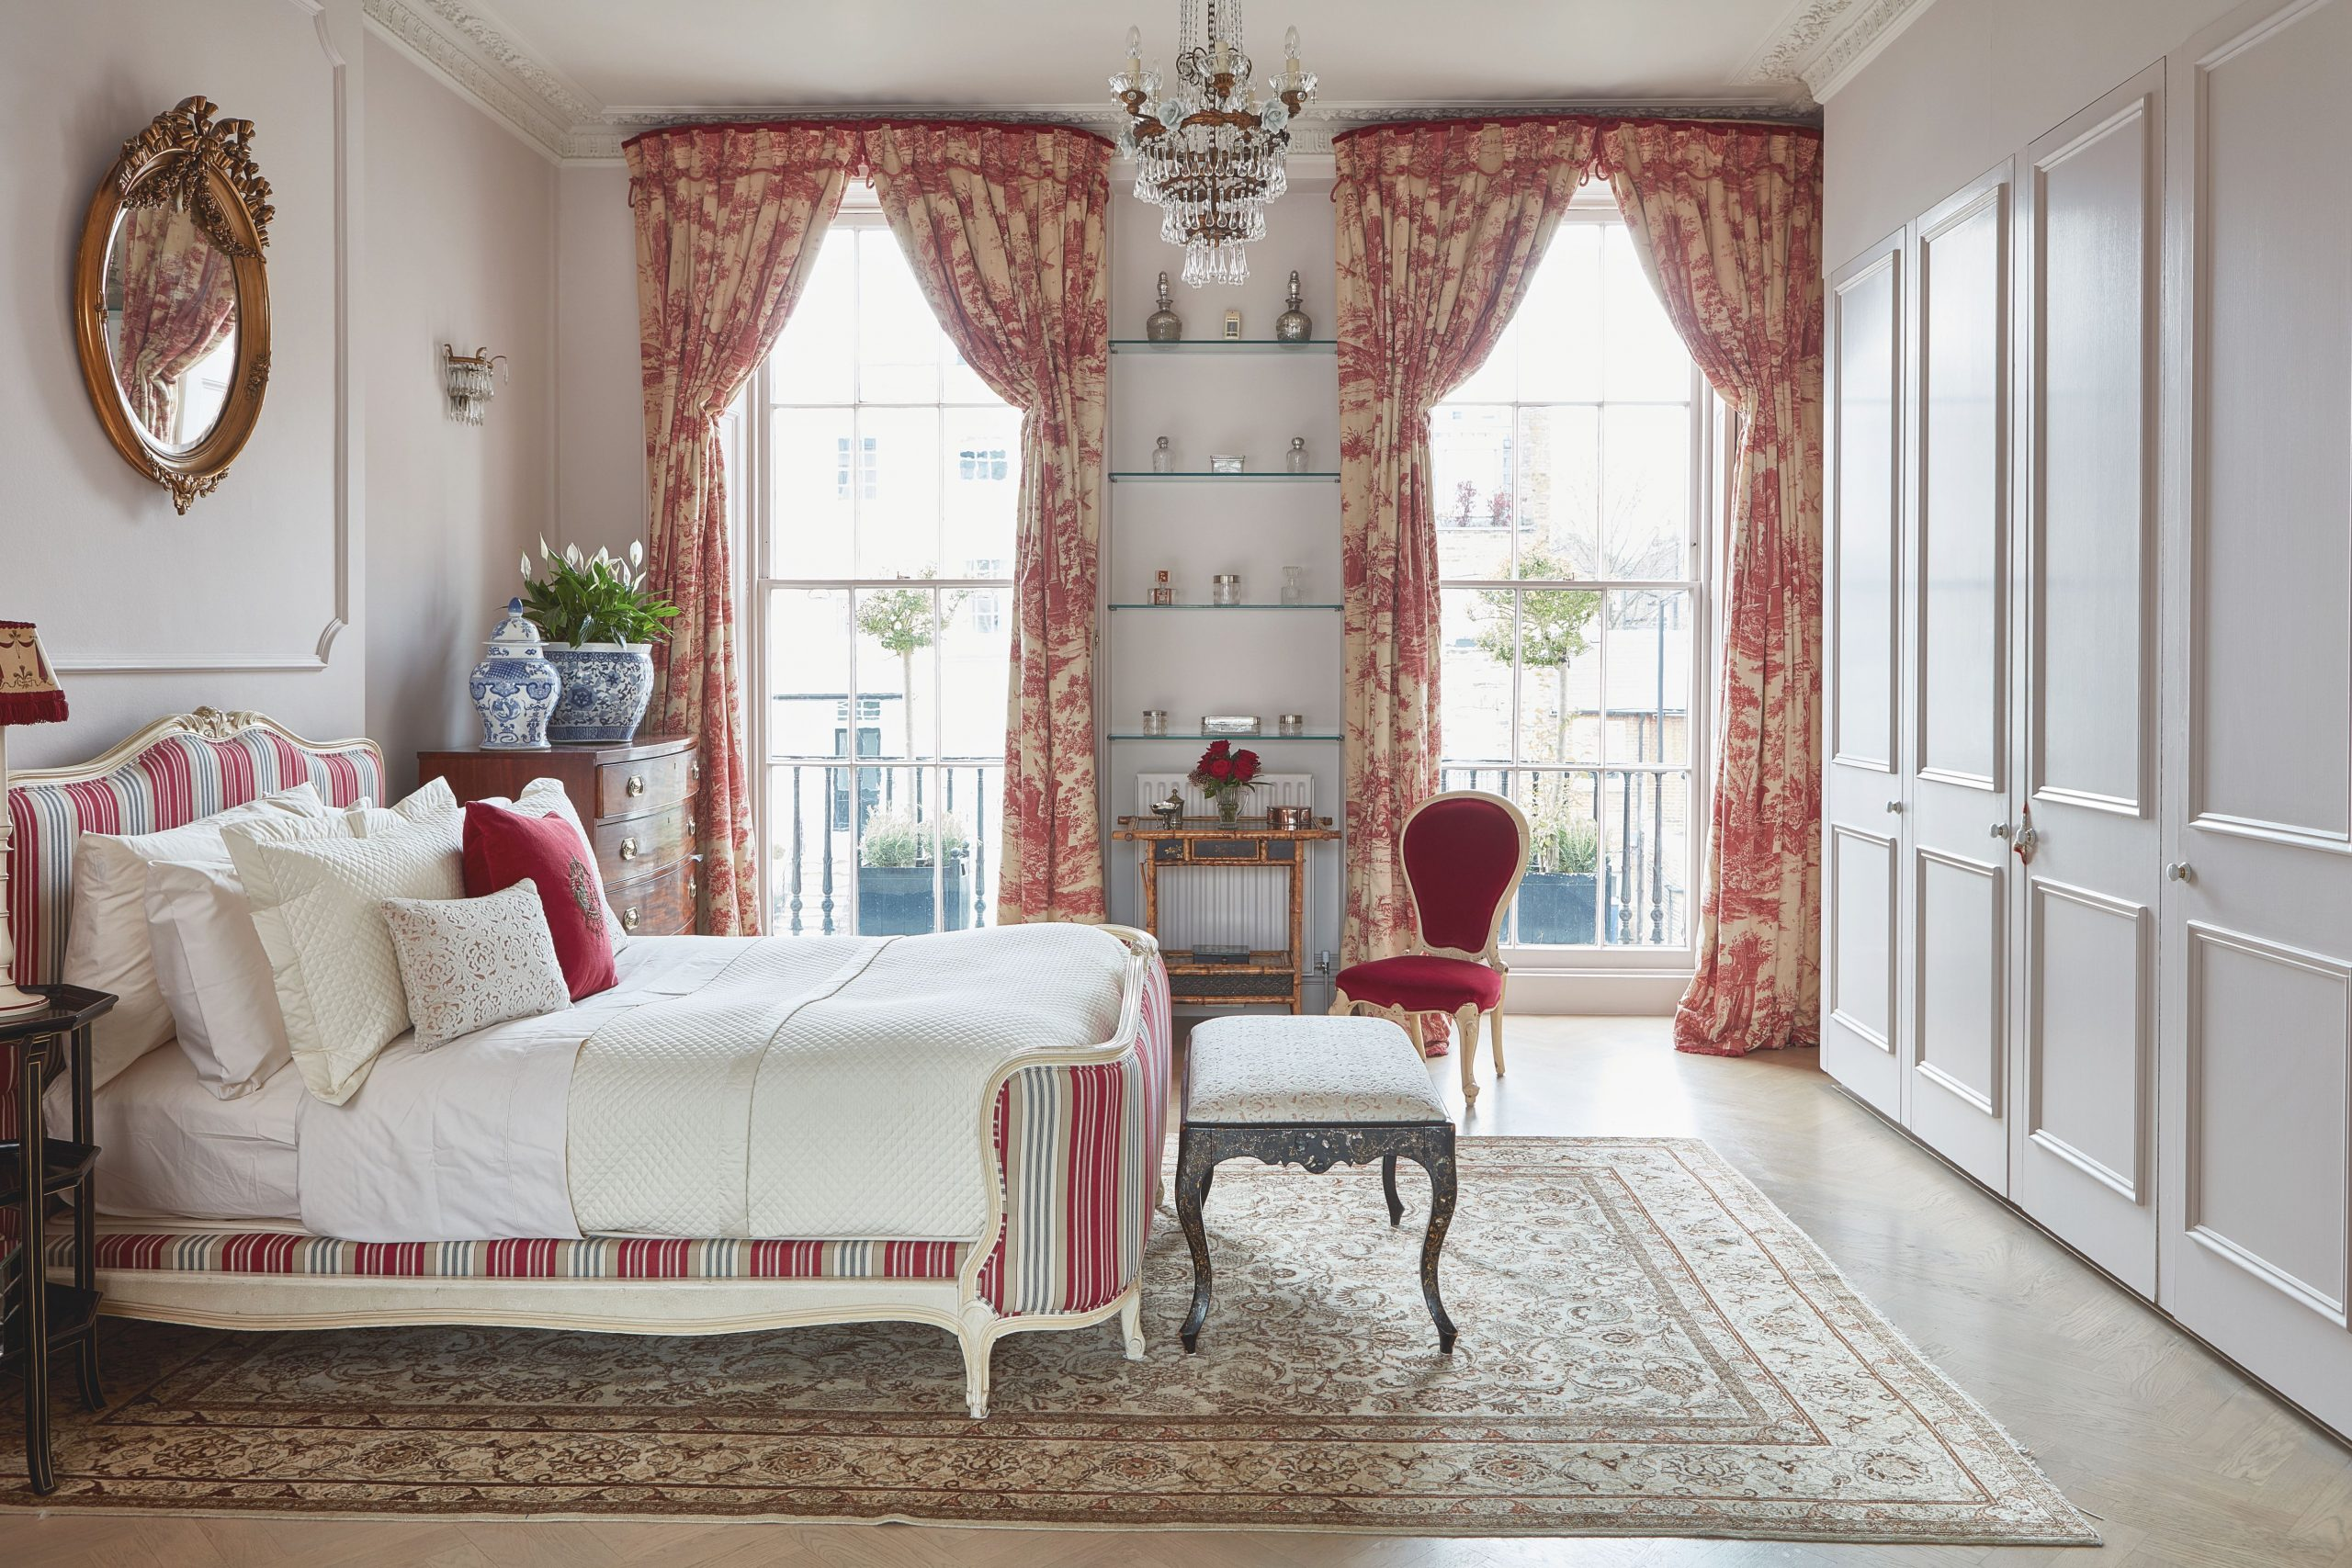 French Bedroom Ideas: 18 Beautifully Romantic Looks | Real Homes throughout French Bedroom Decorating Ideas